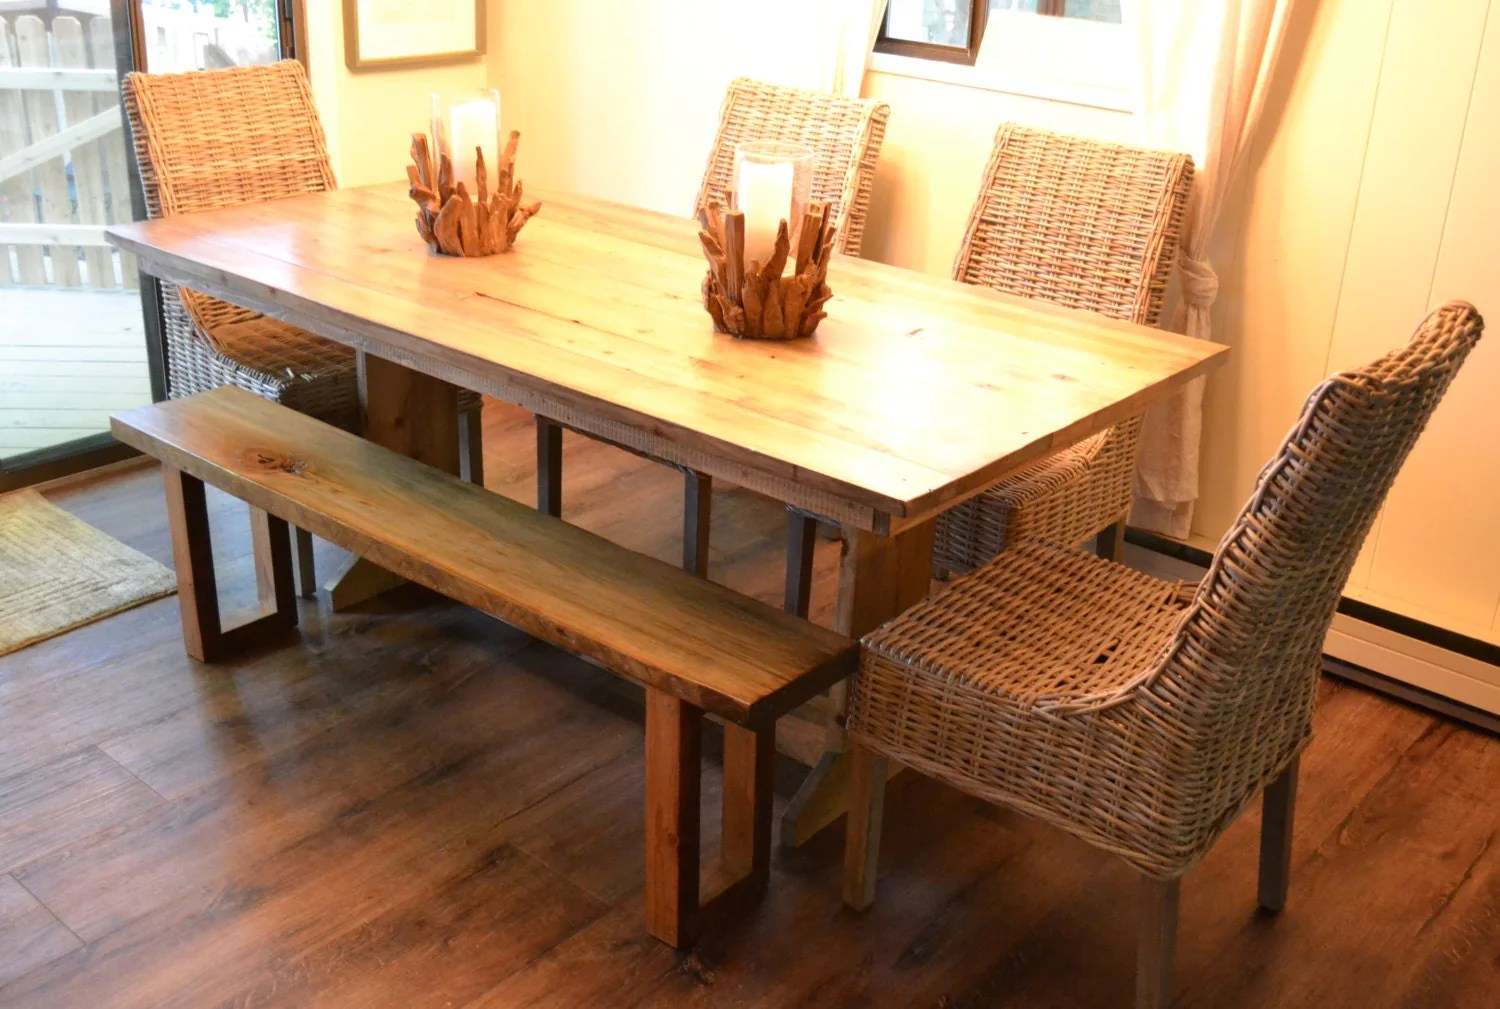 Reclaimed Wood Farm Table Dining Table Kitchen Table